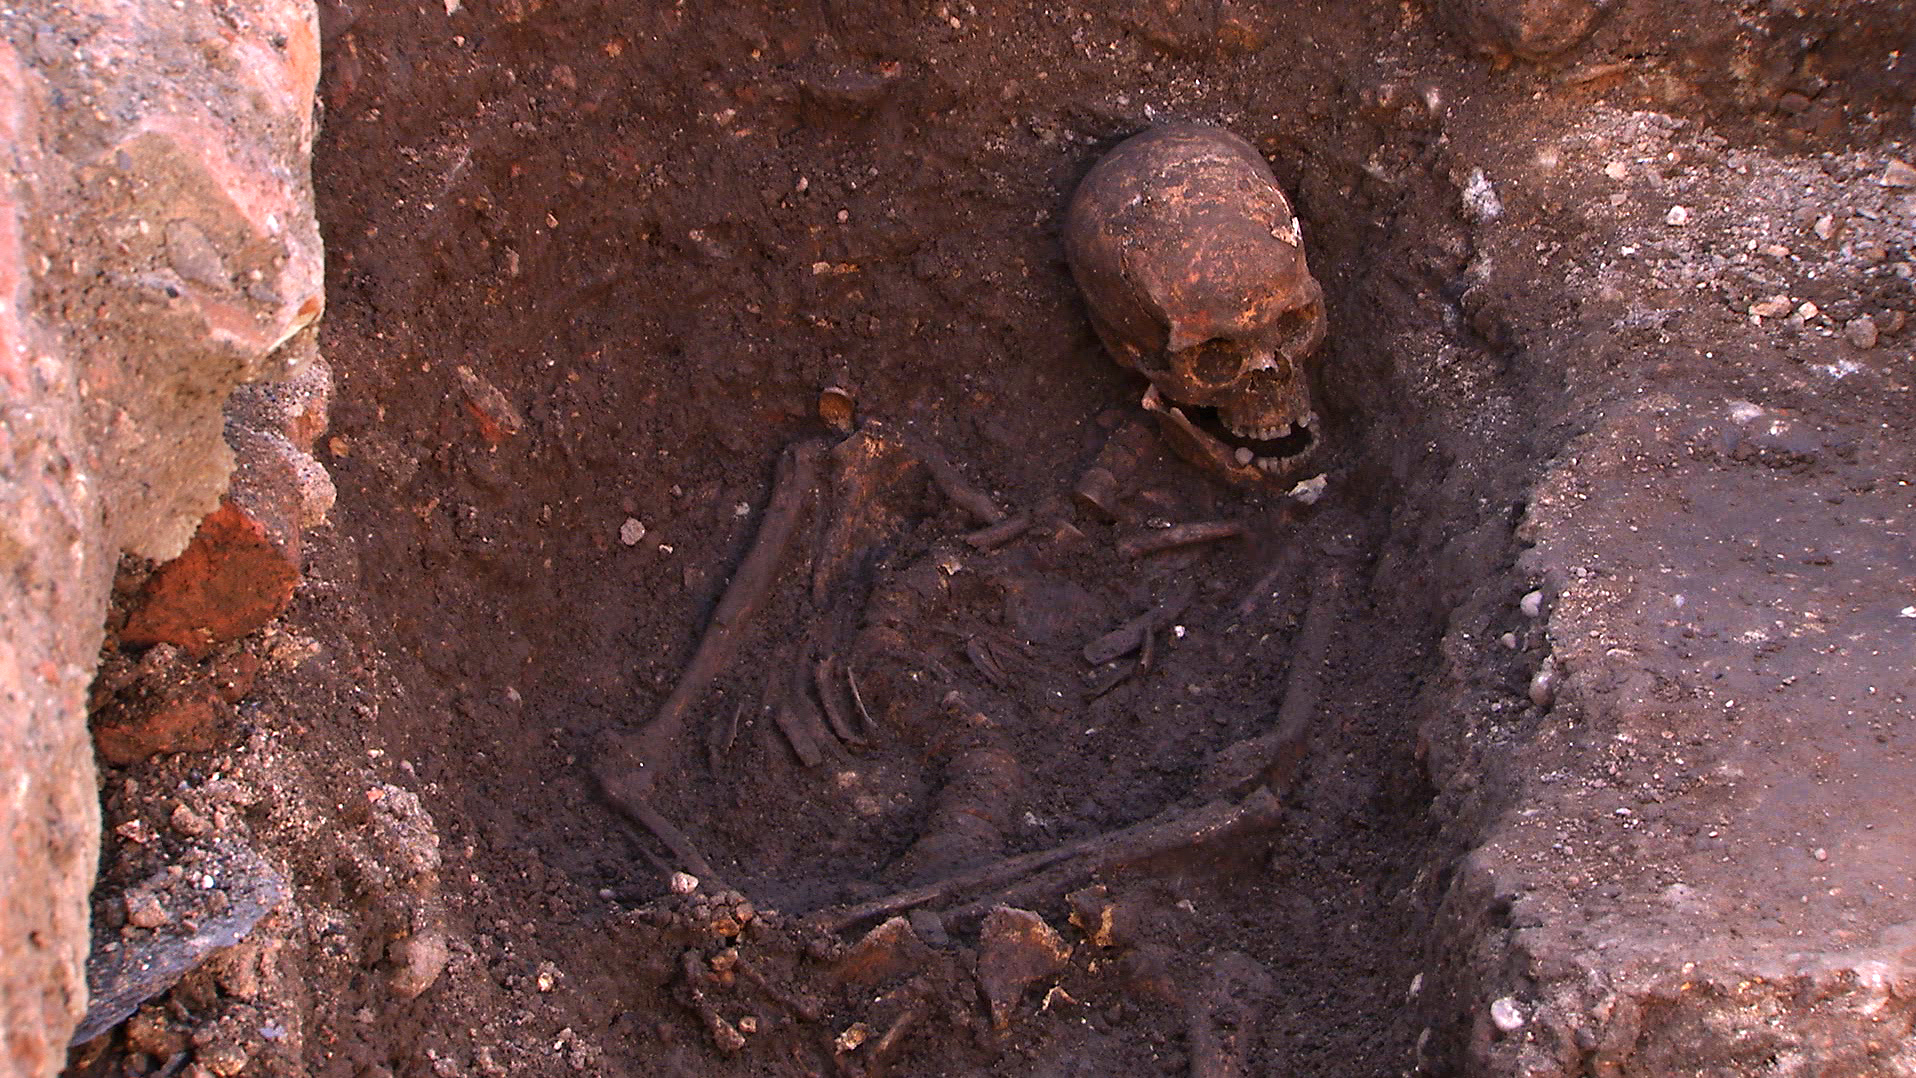 No Hunch Here: Richard III Suffered From Scoliosis Instead